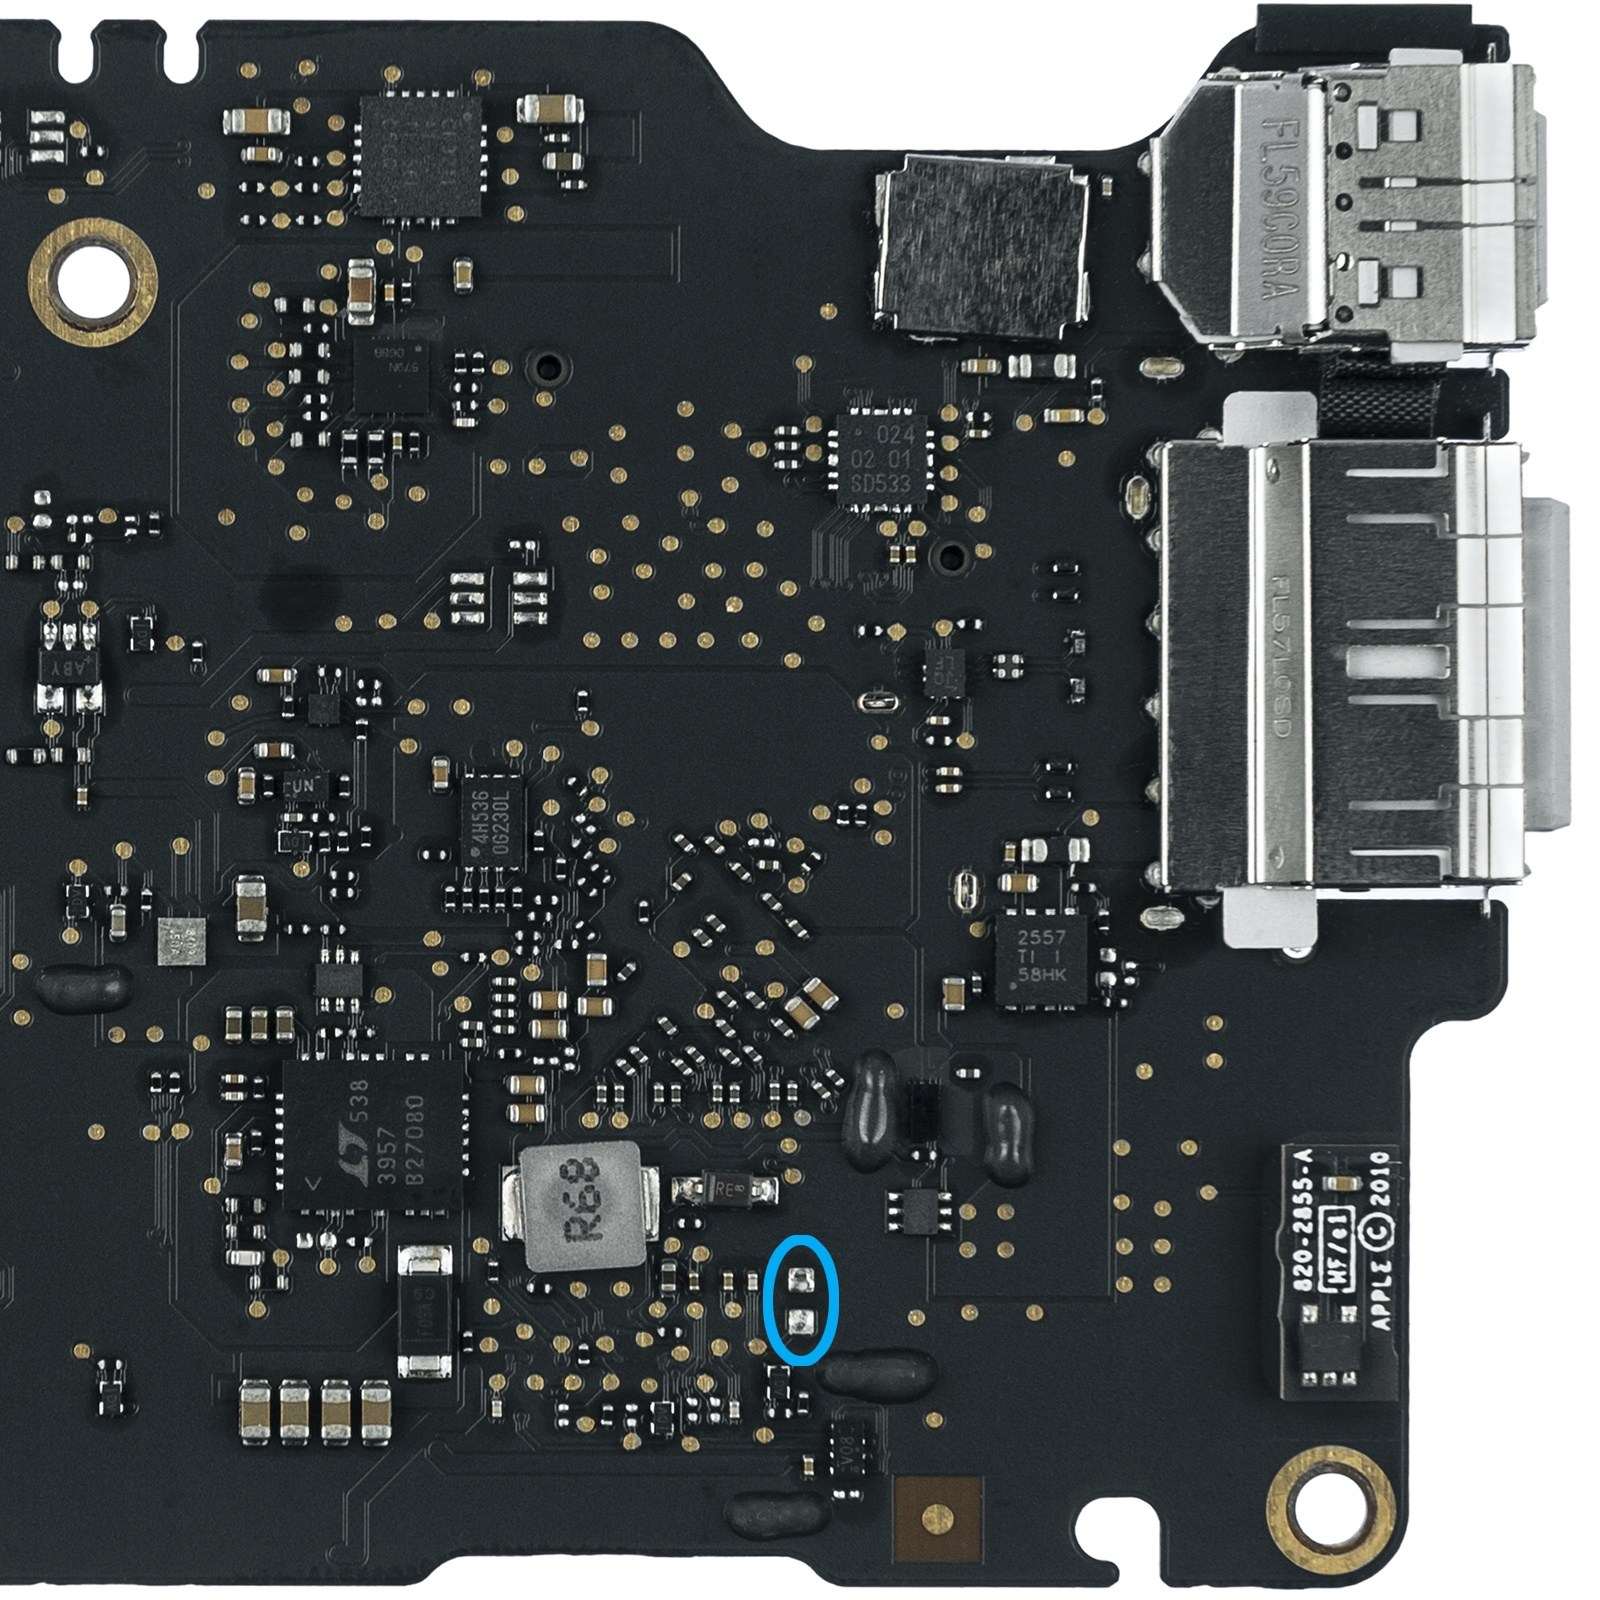 A1465 Early 2015 820-00164-03, 820-00164-A power on pads